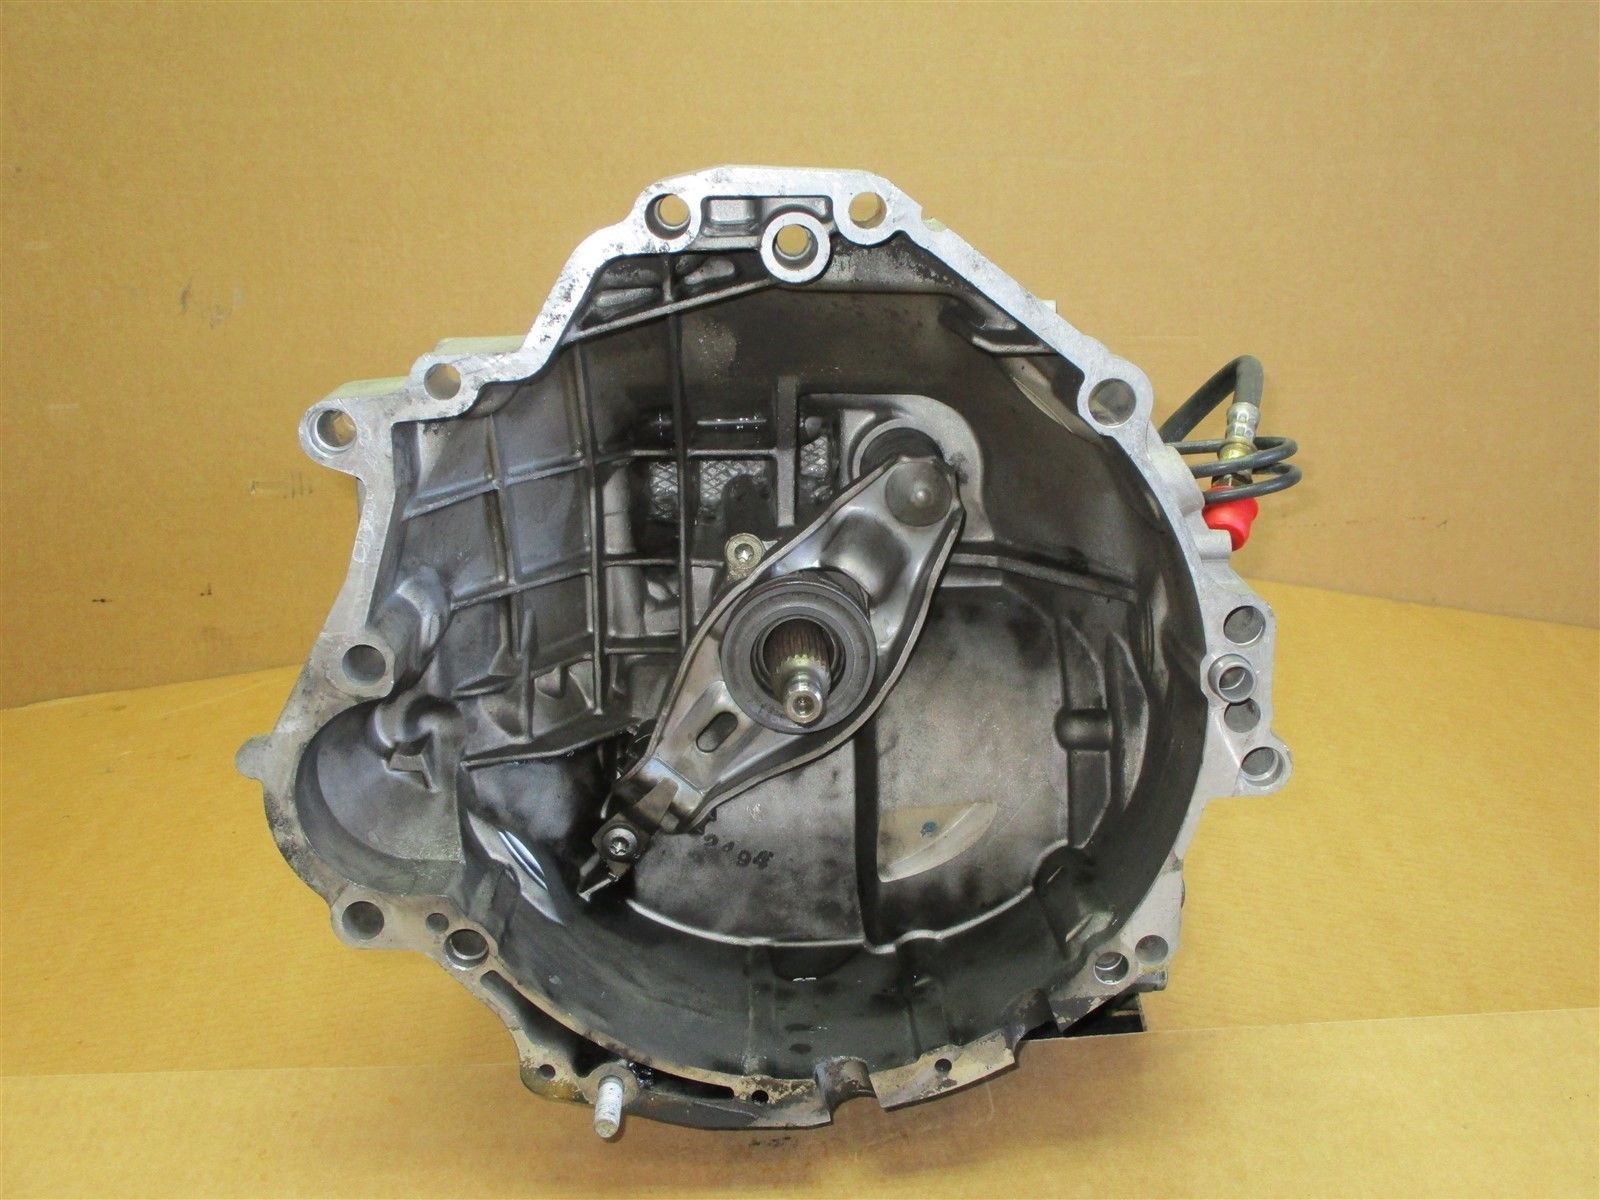 08 Boxster S RWD Porsche 987 6 SPEED MANUAL TRANSMISSION GEAR BOX G87.21 35,640